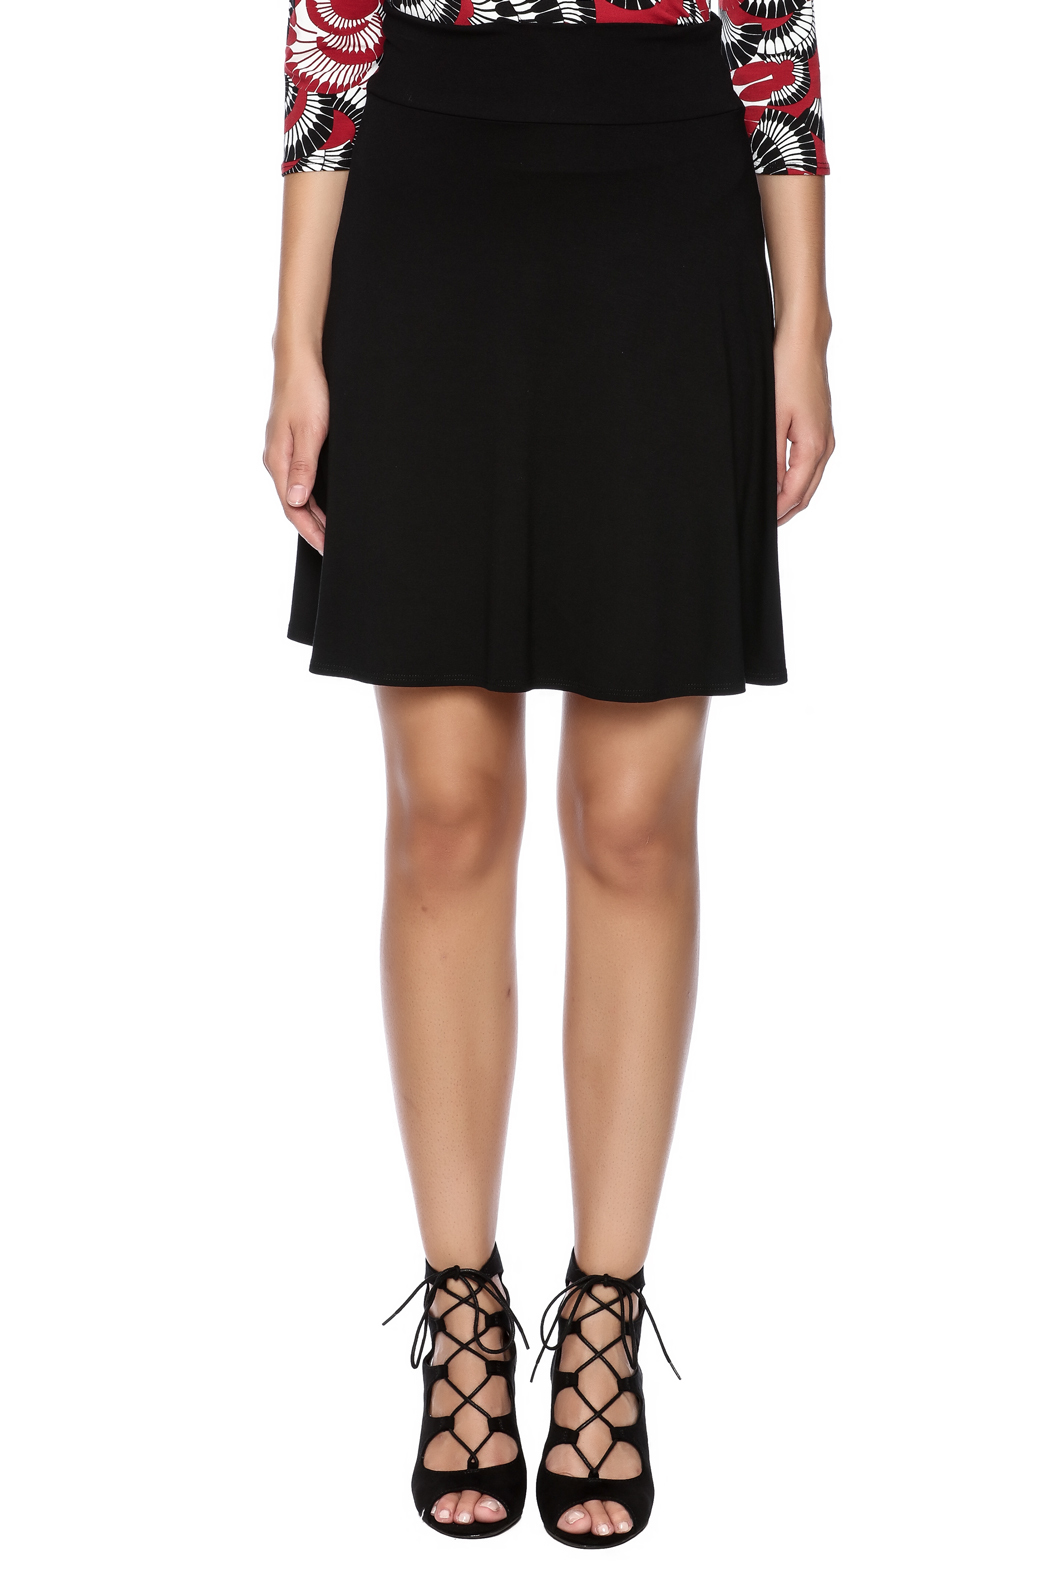 salaam Black Short Flippy Skirt - Side Cropped Image